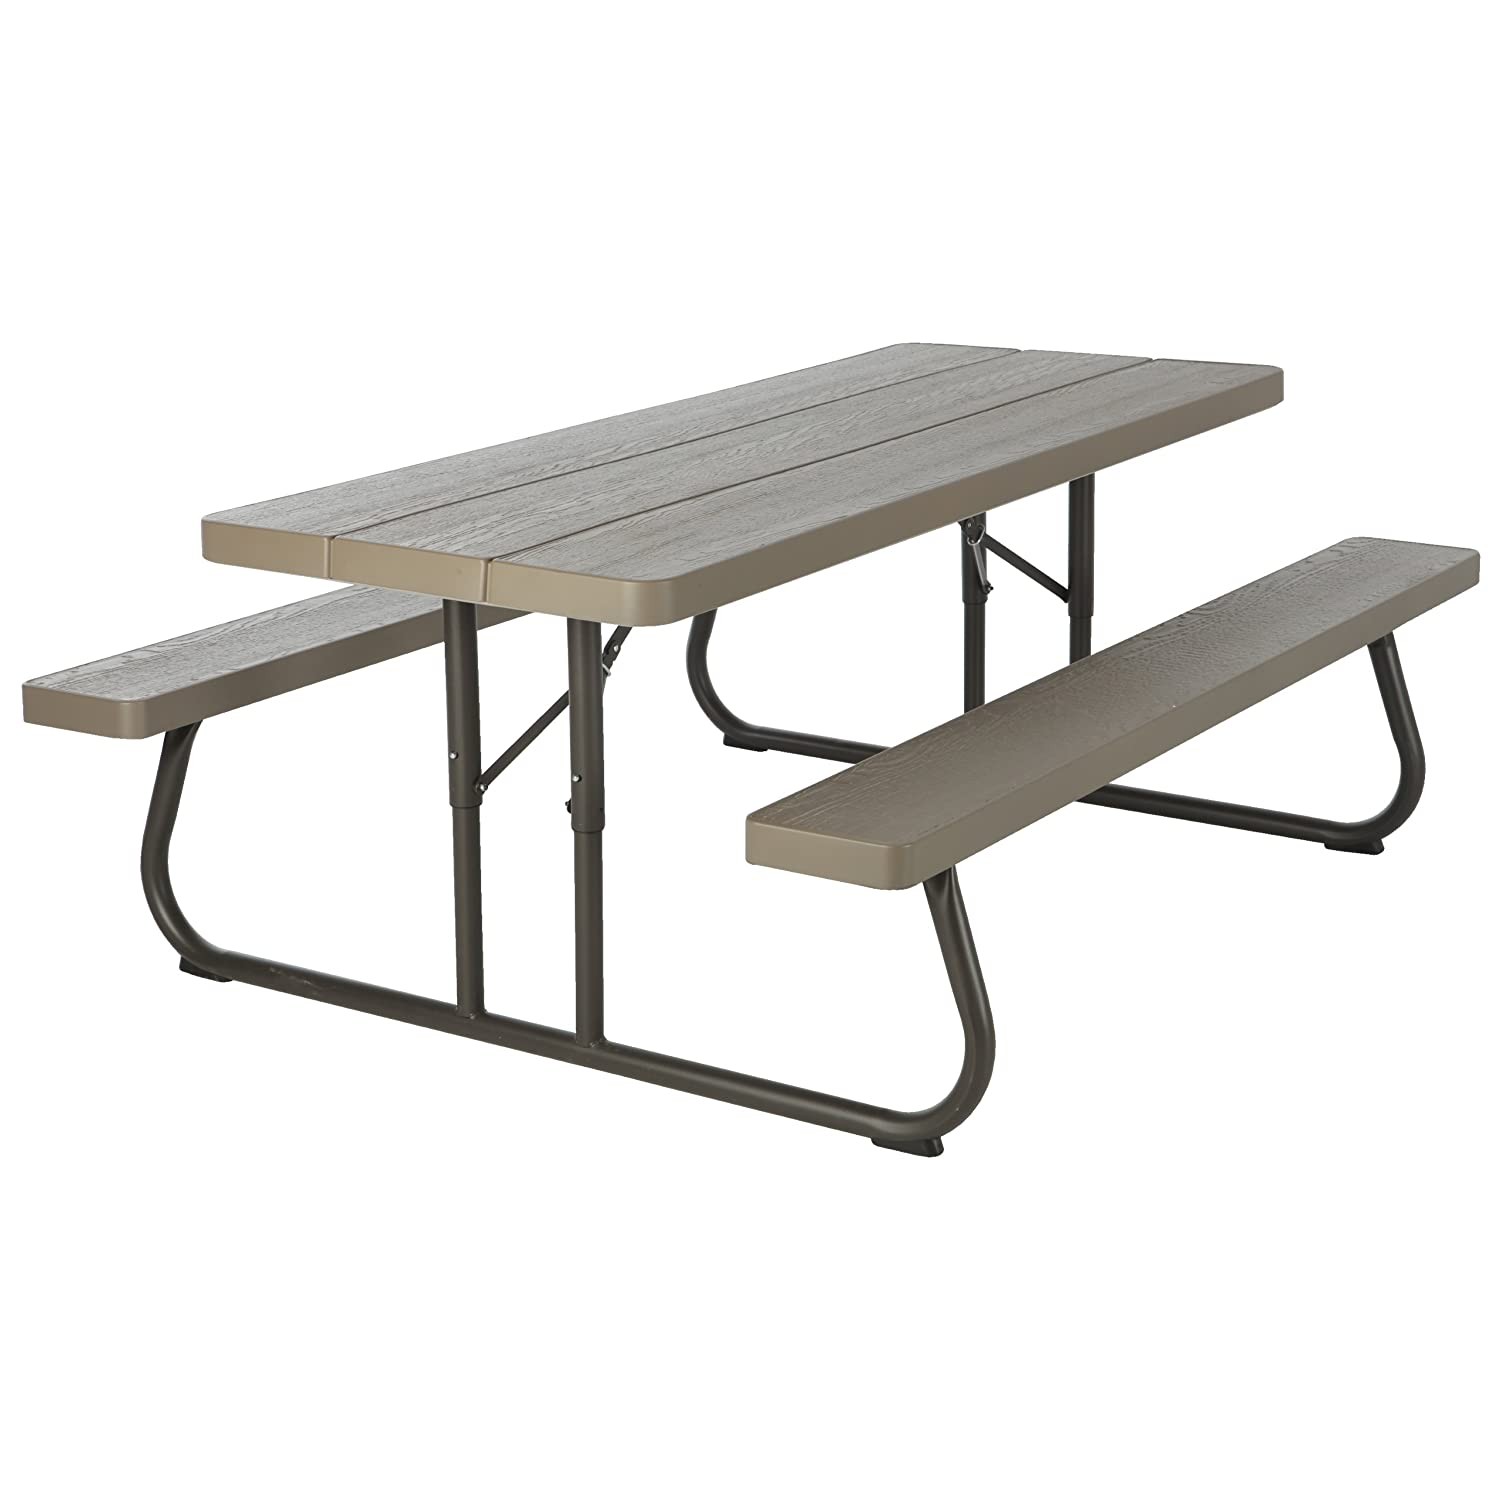 amazoncom lifetime wood grain picnic table and benches 6 feet brown patio lawn u0026 garden